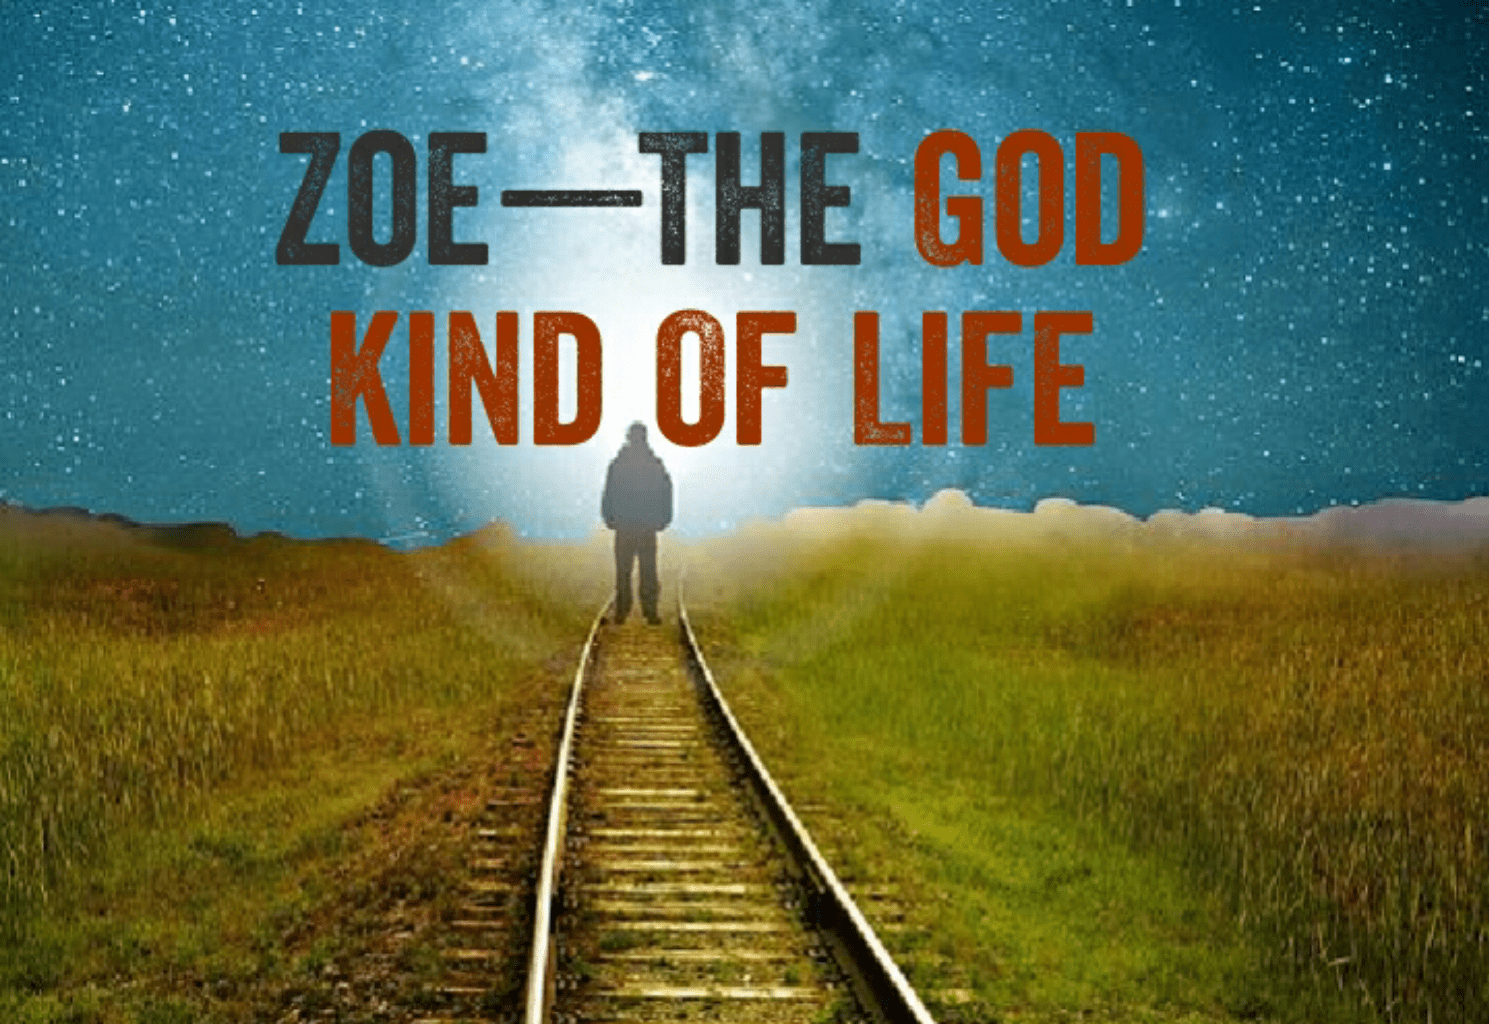 Zoe-The God Kind Of Life